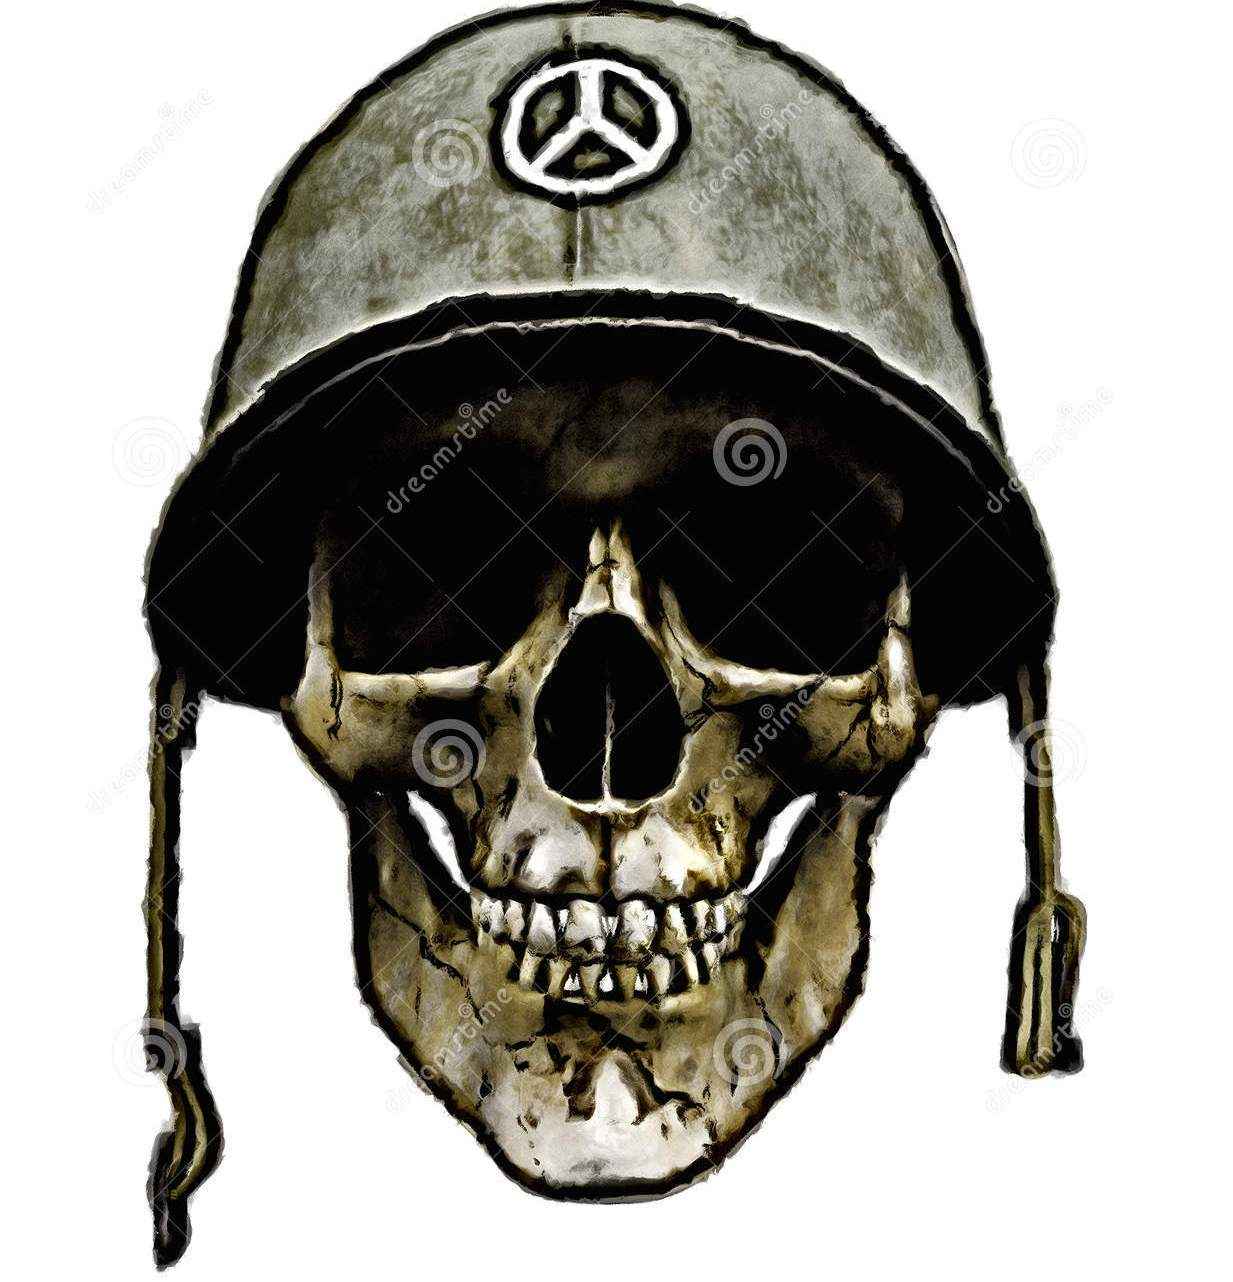 American Army Helmet Dead Soldier Tattoo Design